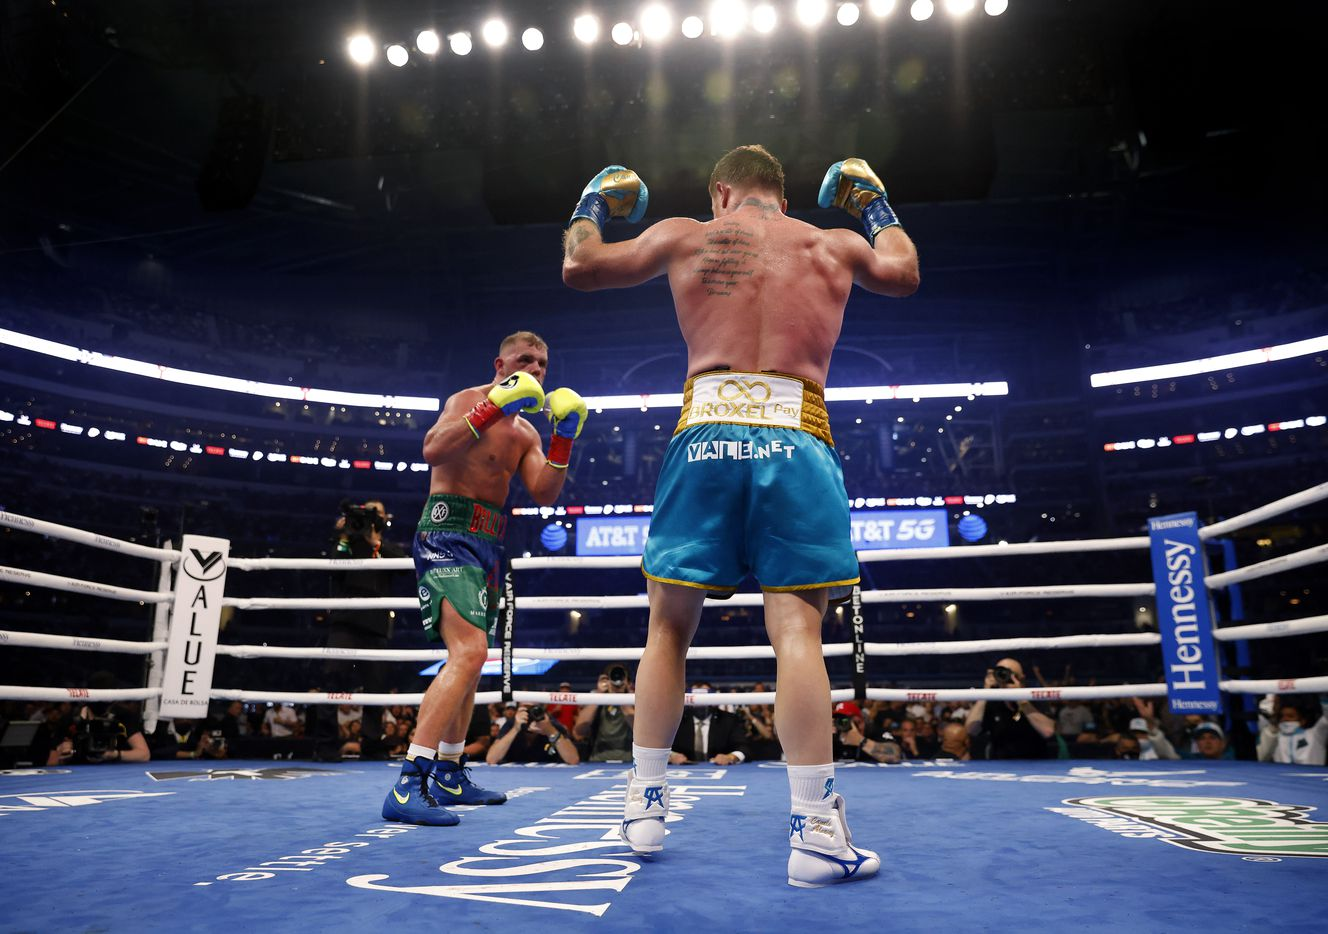 Boxer Canelo Alvarez (right) encourages the crowd to get louder as he has Billy Joe Saunders in his sights during the eighth round of their unified super middleweight title fight at AT&T Stadium in Arlington, Saturday, May 8, 2021. Saunders couldn't go on because he couldn't see following the round. Alvarez won. (Tom Fox/The Dallas Morning News)